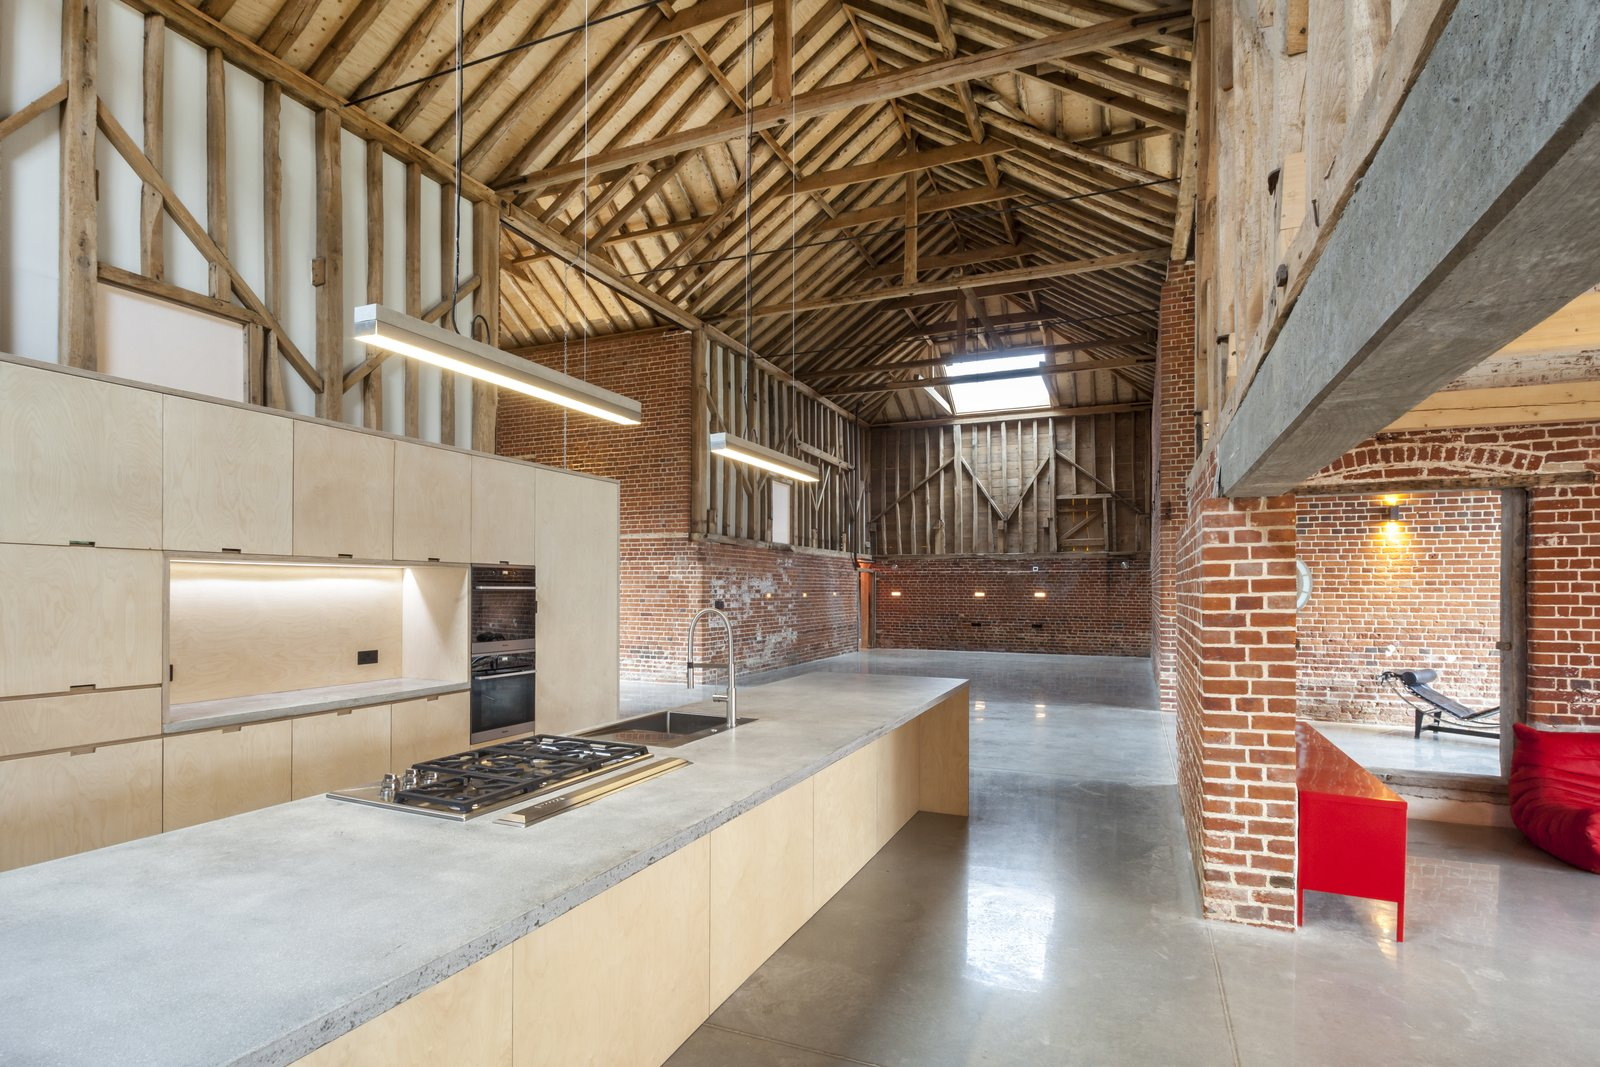 The kitchen is a minimalist, functional space with Miele and Wolf appliances, Lumi joinery, and concrete worktops and sinks designed by the homeowners. Tagged: Kitchen, Concrete Counter, Concrete Floor, and Wood Cabinet.  Photo 6 of 10 in This Converted Barn in the English Countryside Stays True to its Historic Roots